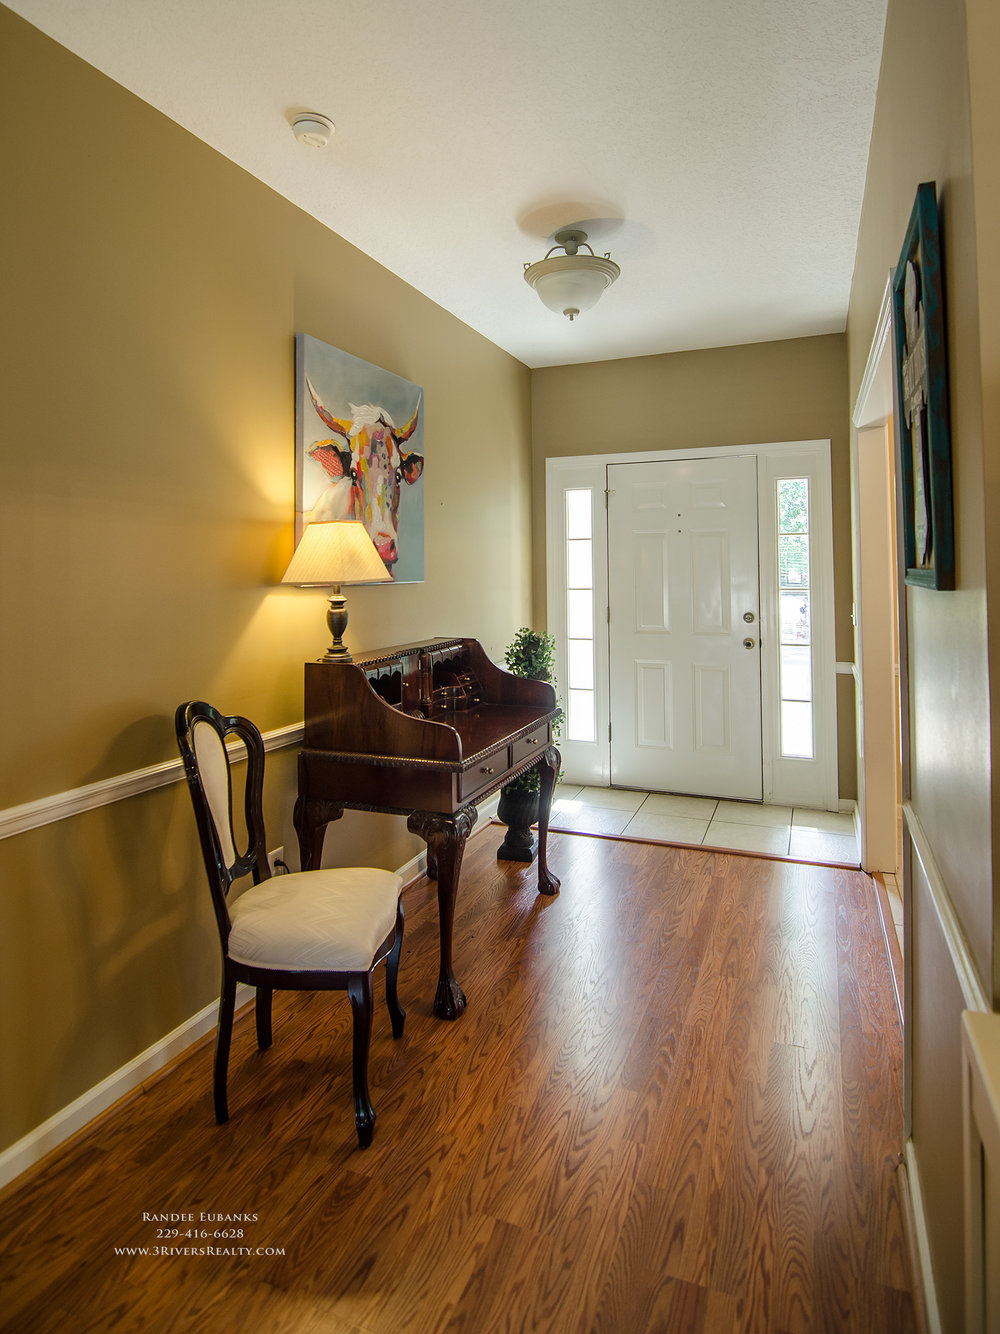 3riversrealty_bainbridge-georgia-home-for-sale_3-bed-2-bath_fireplace_three-rivers-realty_TaurusUSA_pool_back-porch_entrance_foyer - Copy.jpg